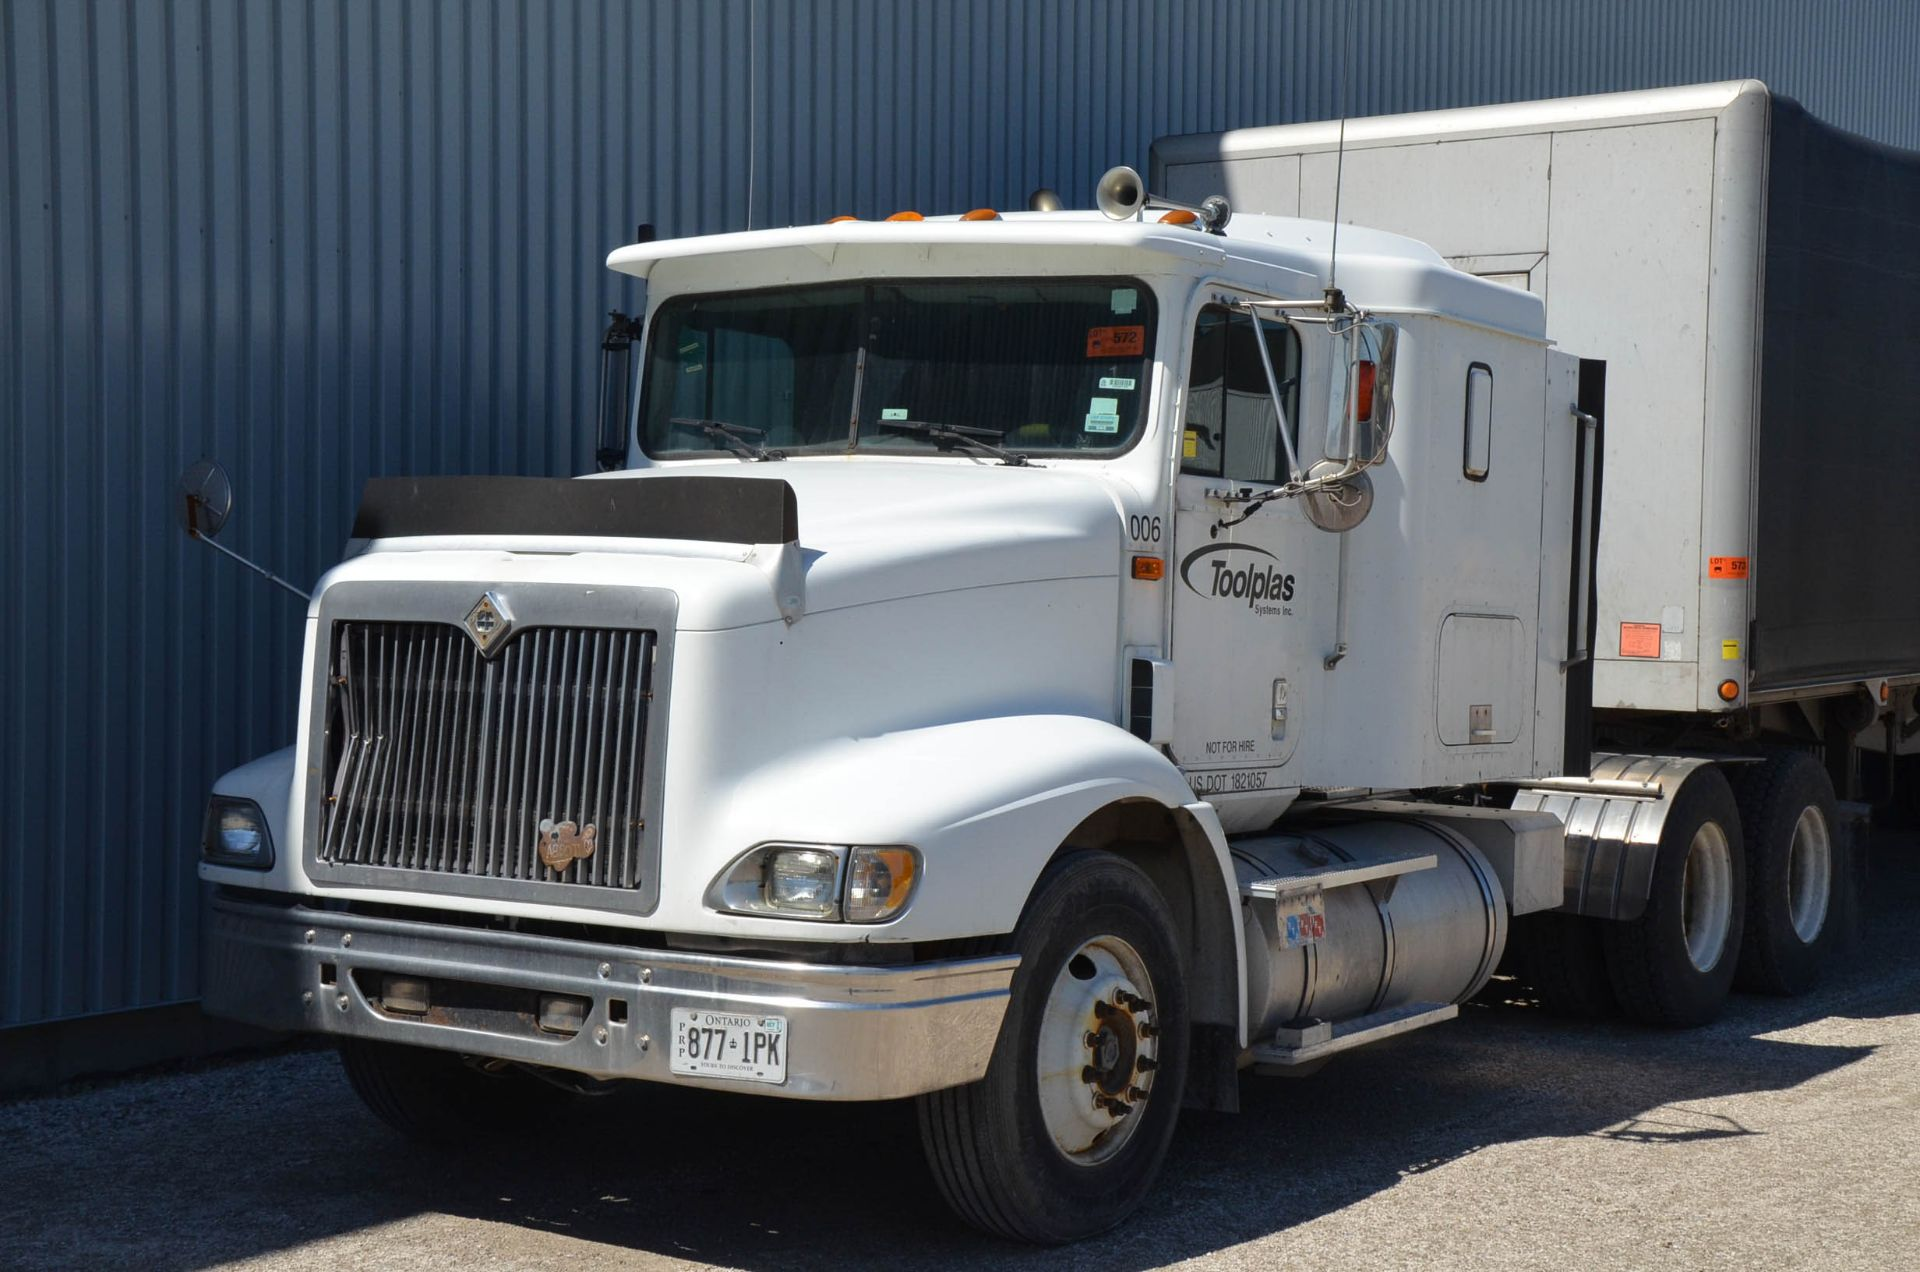 INTERNATIONAL 9200 6X4 TANDEM AXLE SEMI-TRACTOR TRUCK WITH . ENGINE, EATON-FULLER 13 SPEED MANUAL - Image 2 of 18